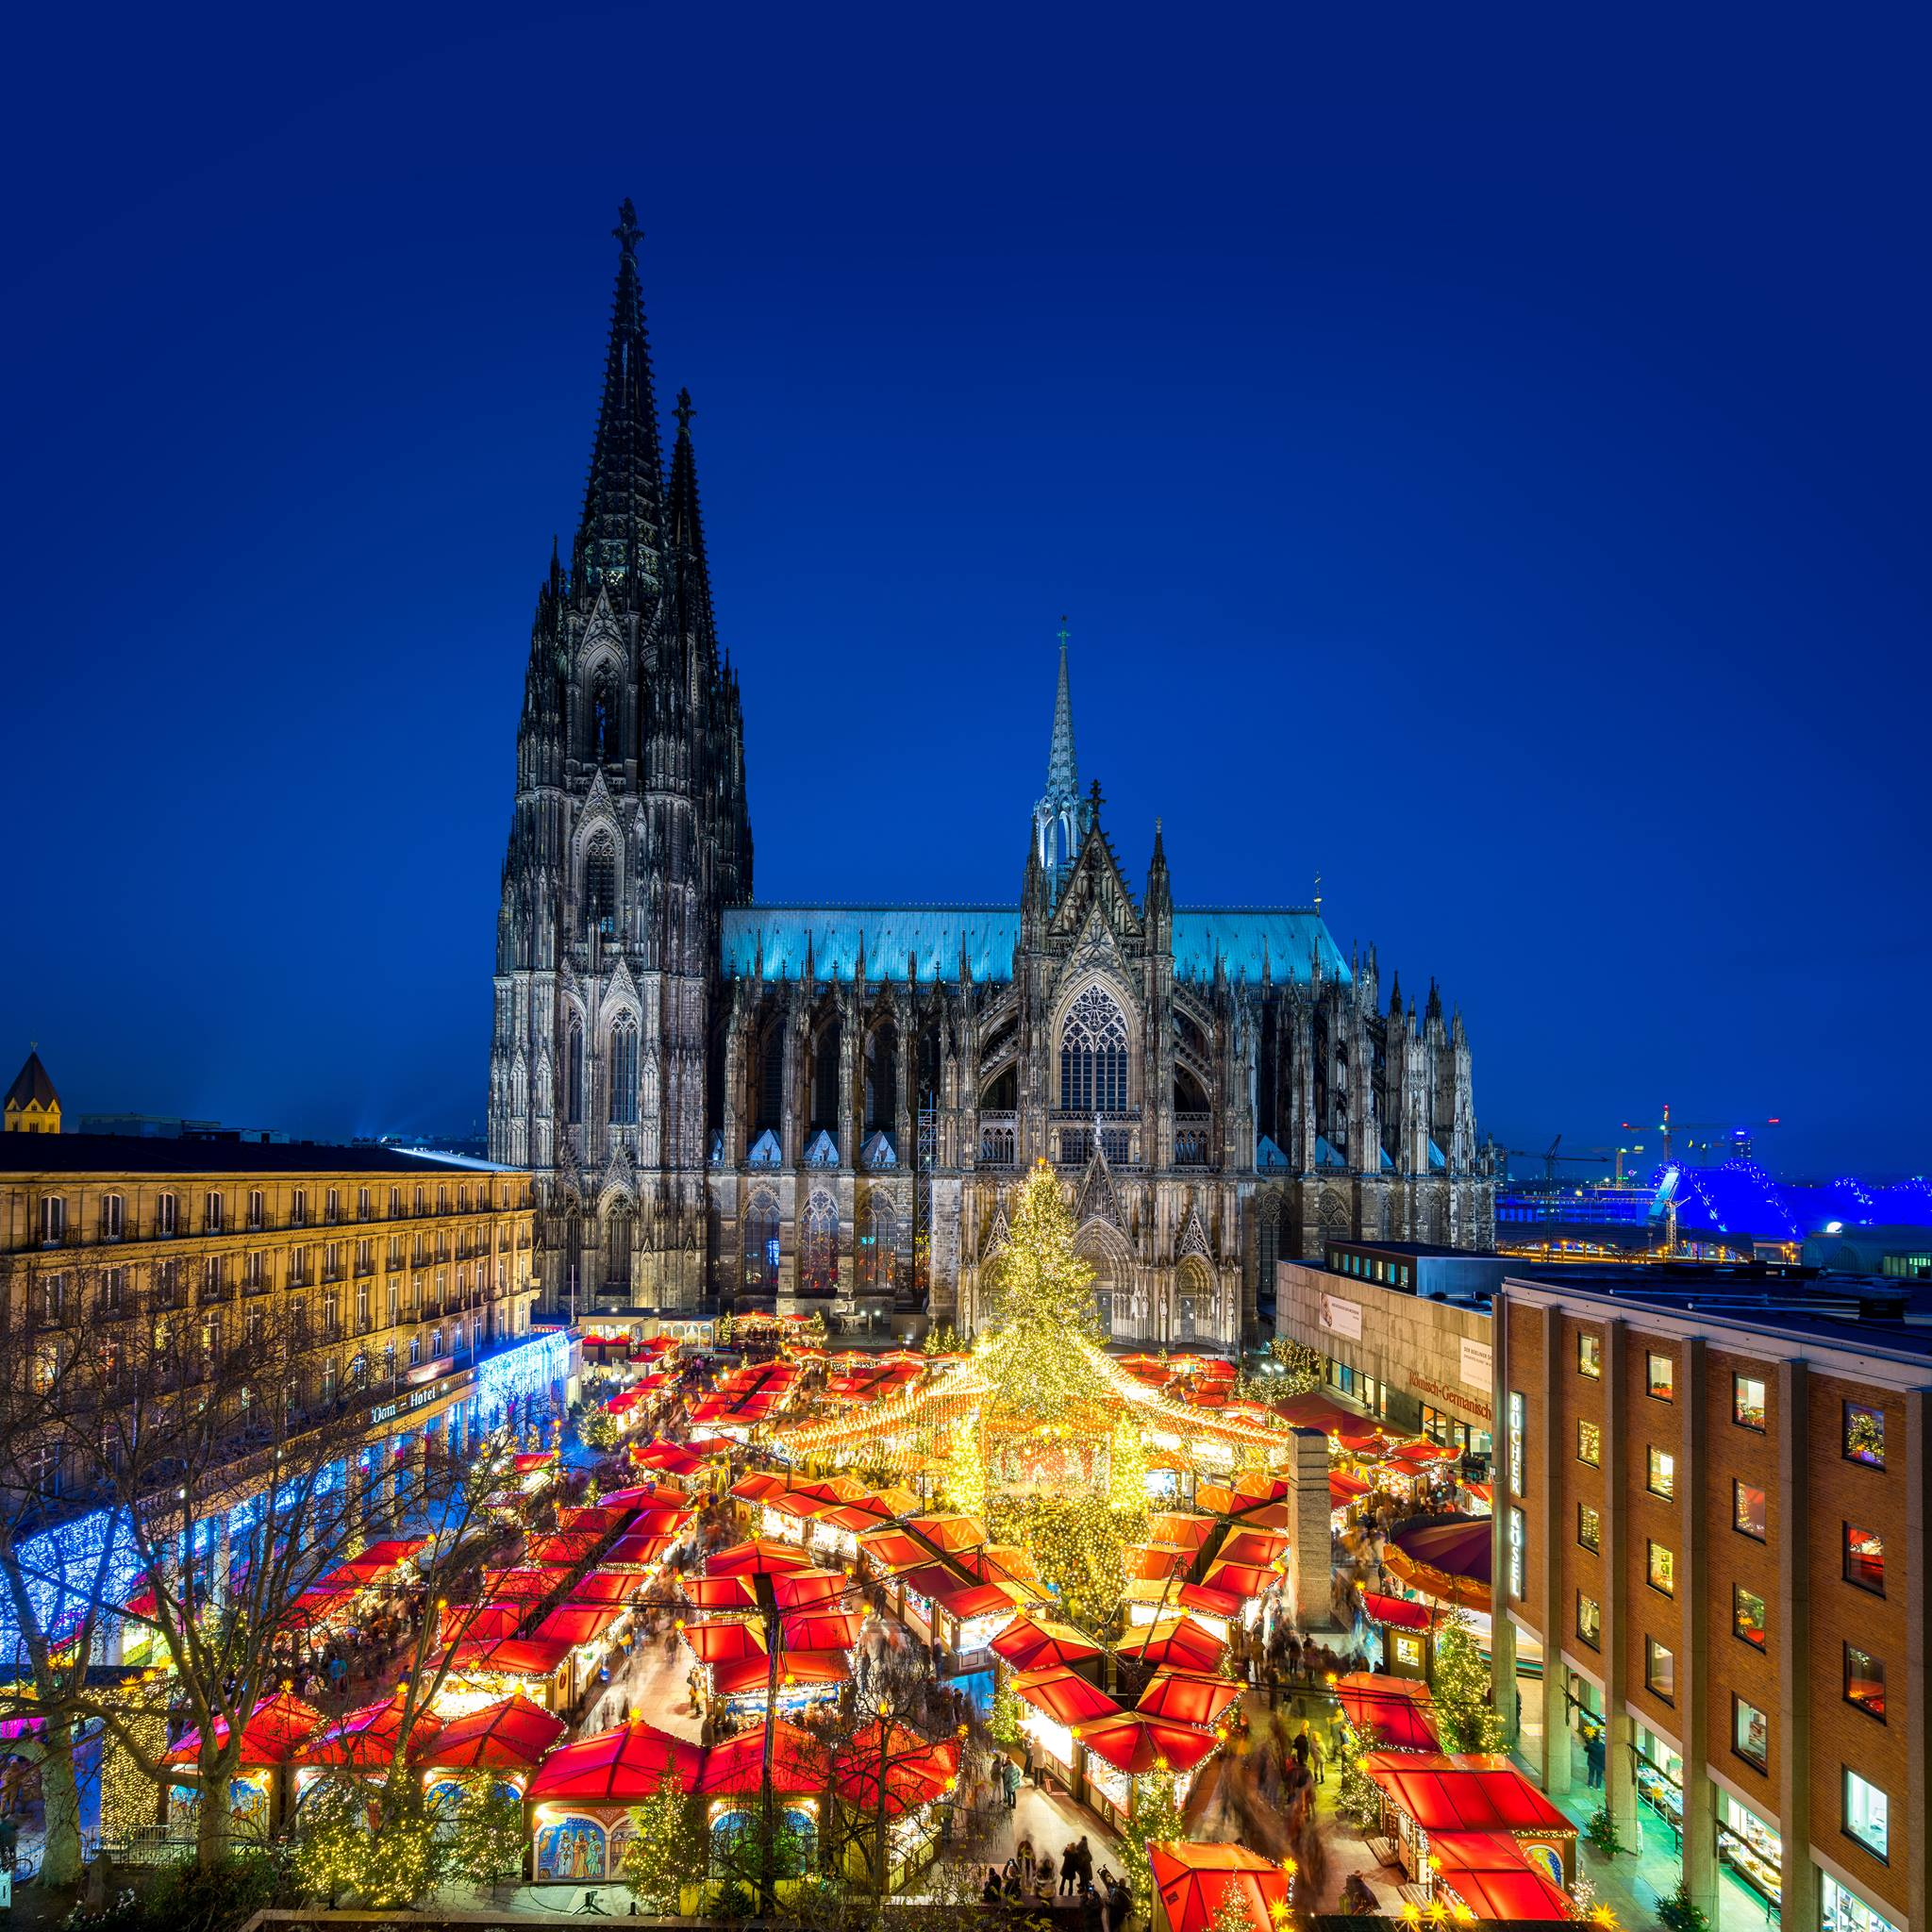 20 Days To Christmas Top 10 Most Christmassy Cities In Europe 5 Days To Christmas Days To Christmas 20 Days To Christmas: Top 10 Most Christmassy Cities In Europe 20 Days To Christmas Top 10 Most Christmassy Cities In Europe 5